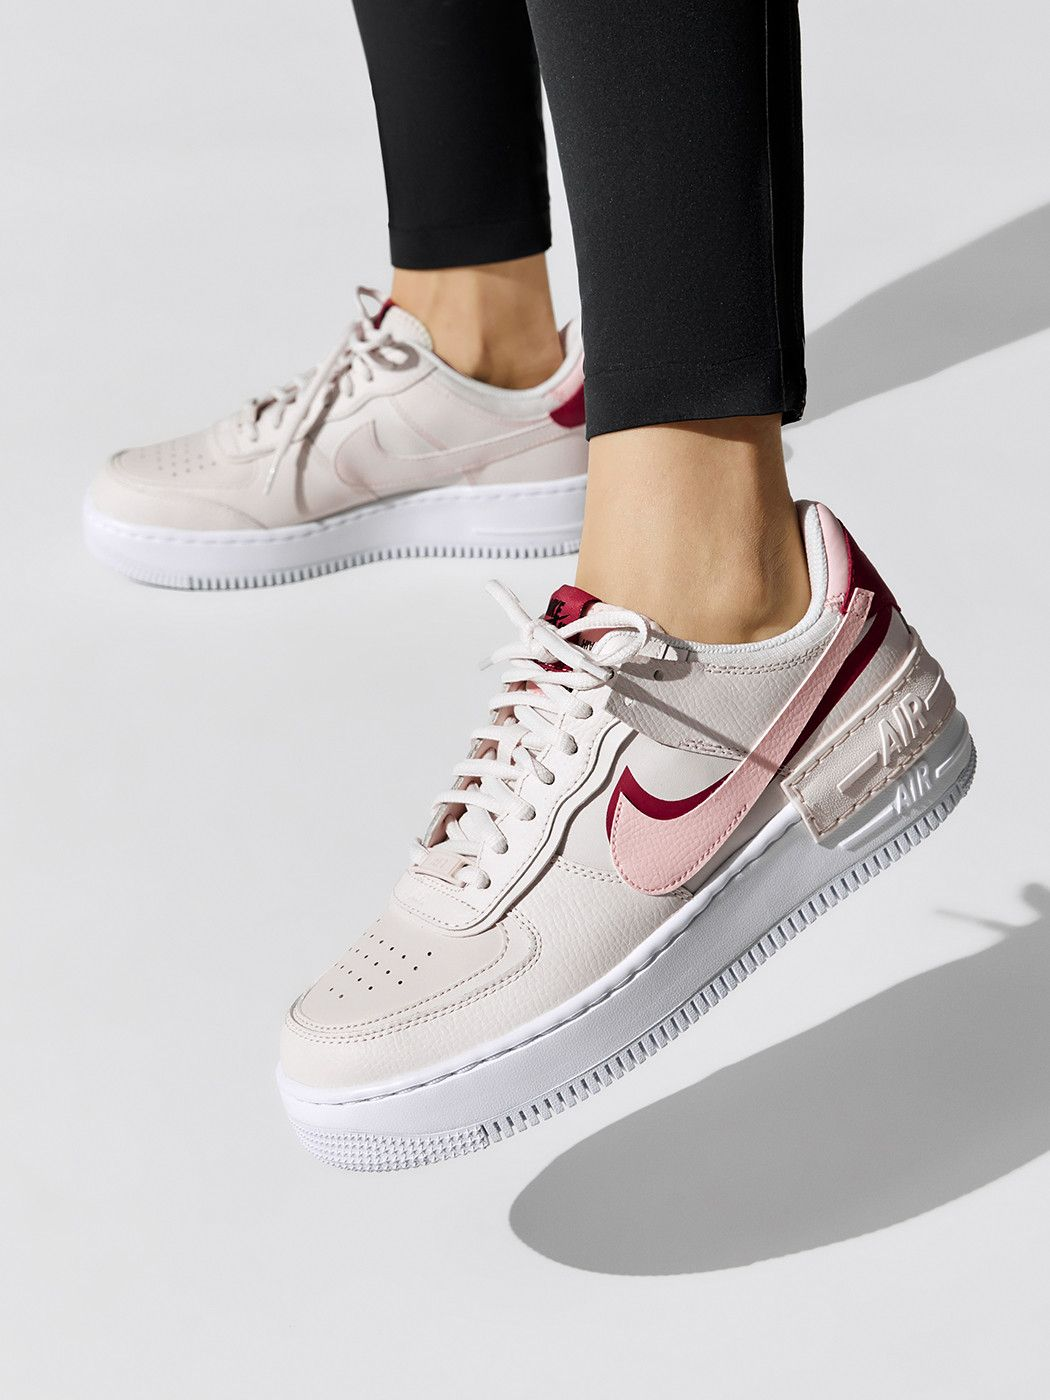 Nike Air Force 1 Shadow Phantom White Red Pink Ci0919 003 In 2020 Sneakers Fashion Nike Shoes Air Force Nike Air Shoes